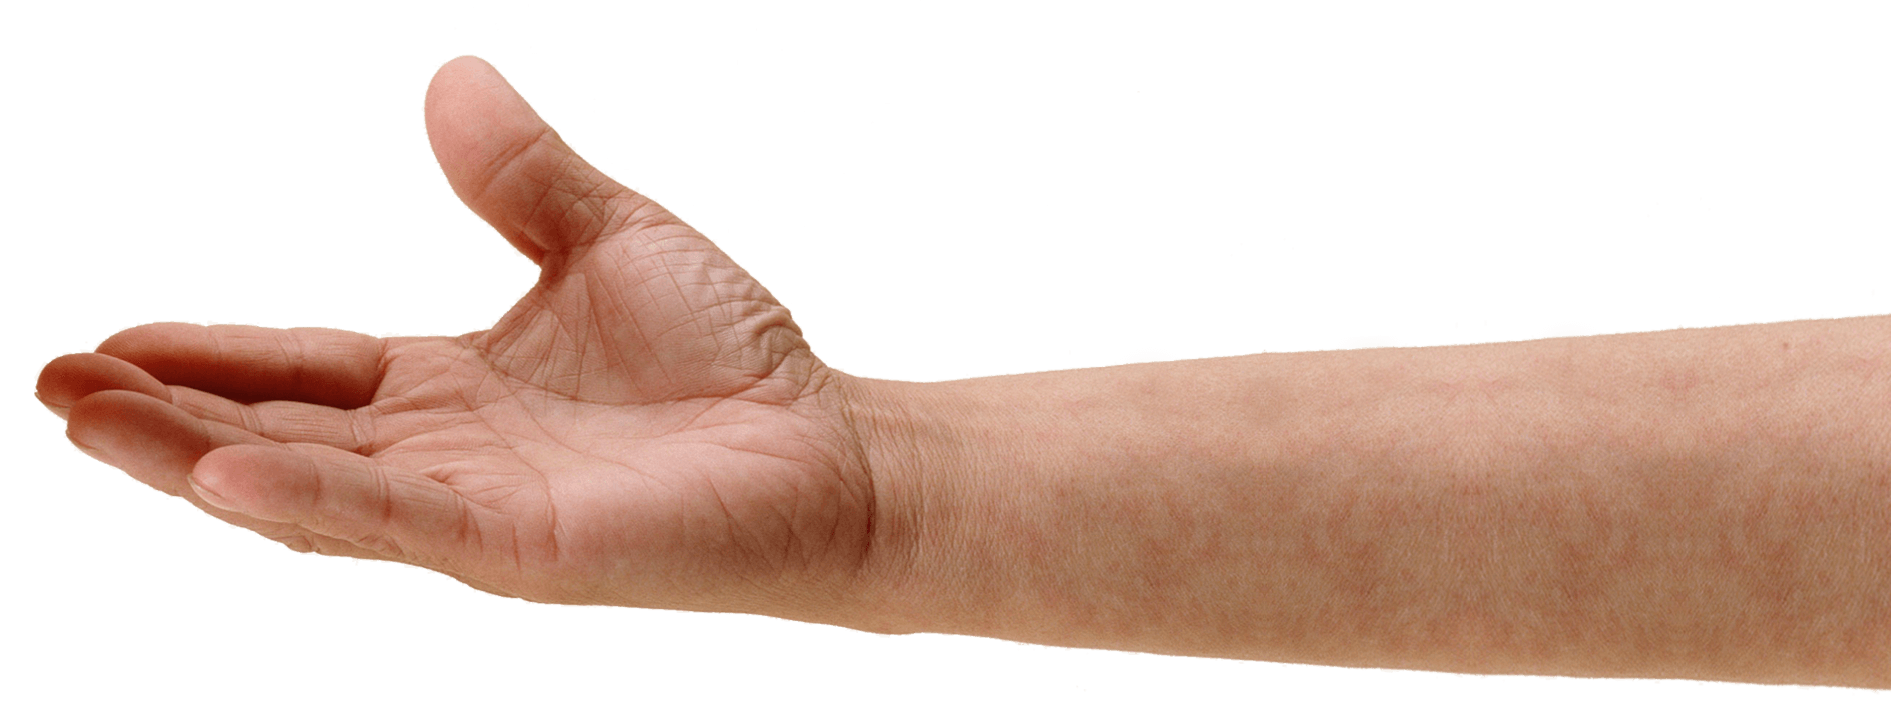 Hand reaching out png. Arm image